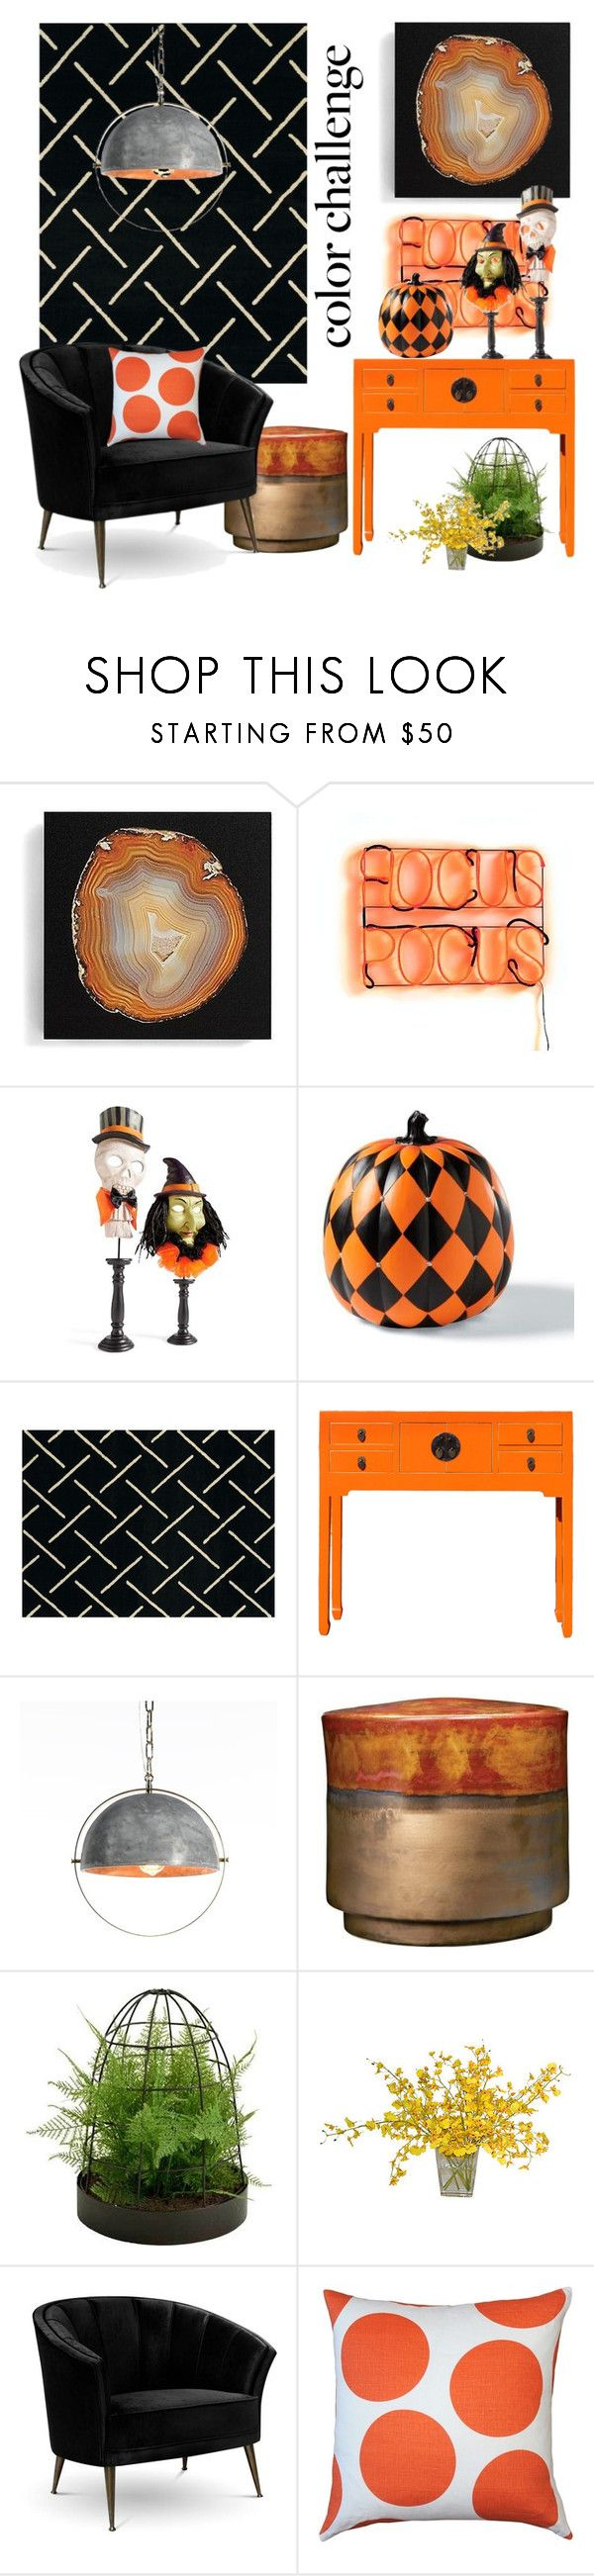 """color challenge: orange & black"" by art-gives-me-life ❤ liked on Polyvore featuring interior, interiors, interior design, home, home decor, interior decorating, Grandin Road, United Weavers of America, West Elm and Picnic at Ascot"